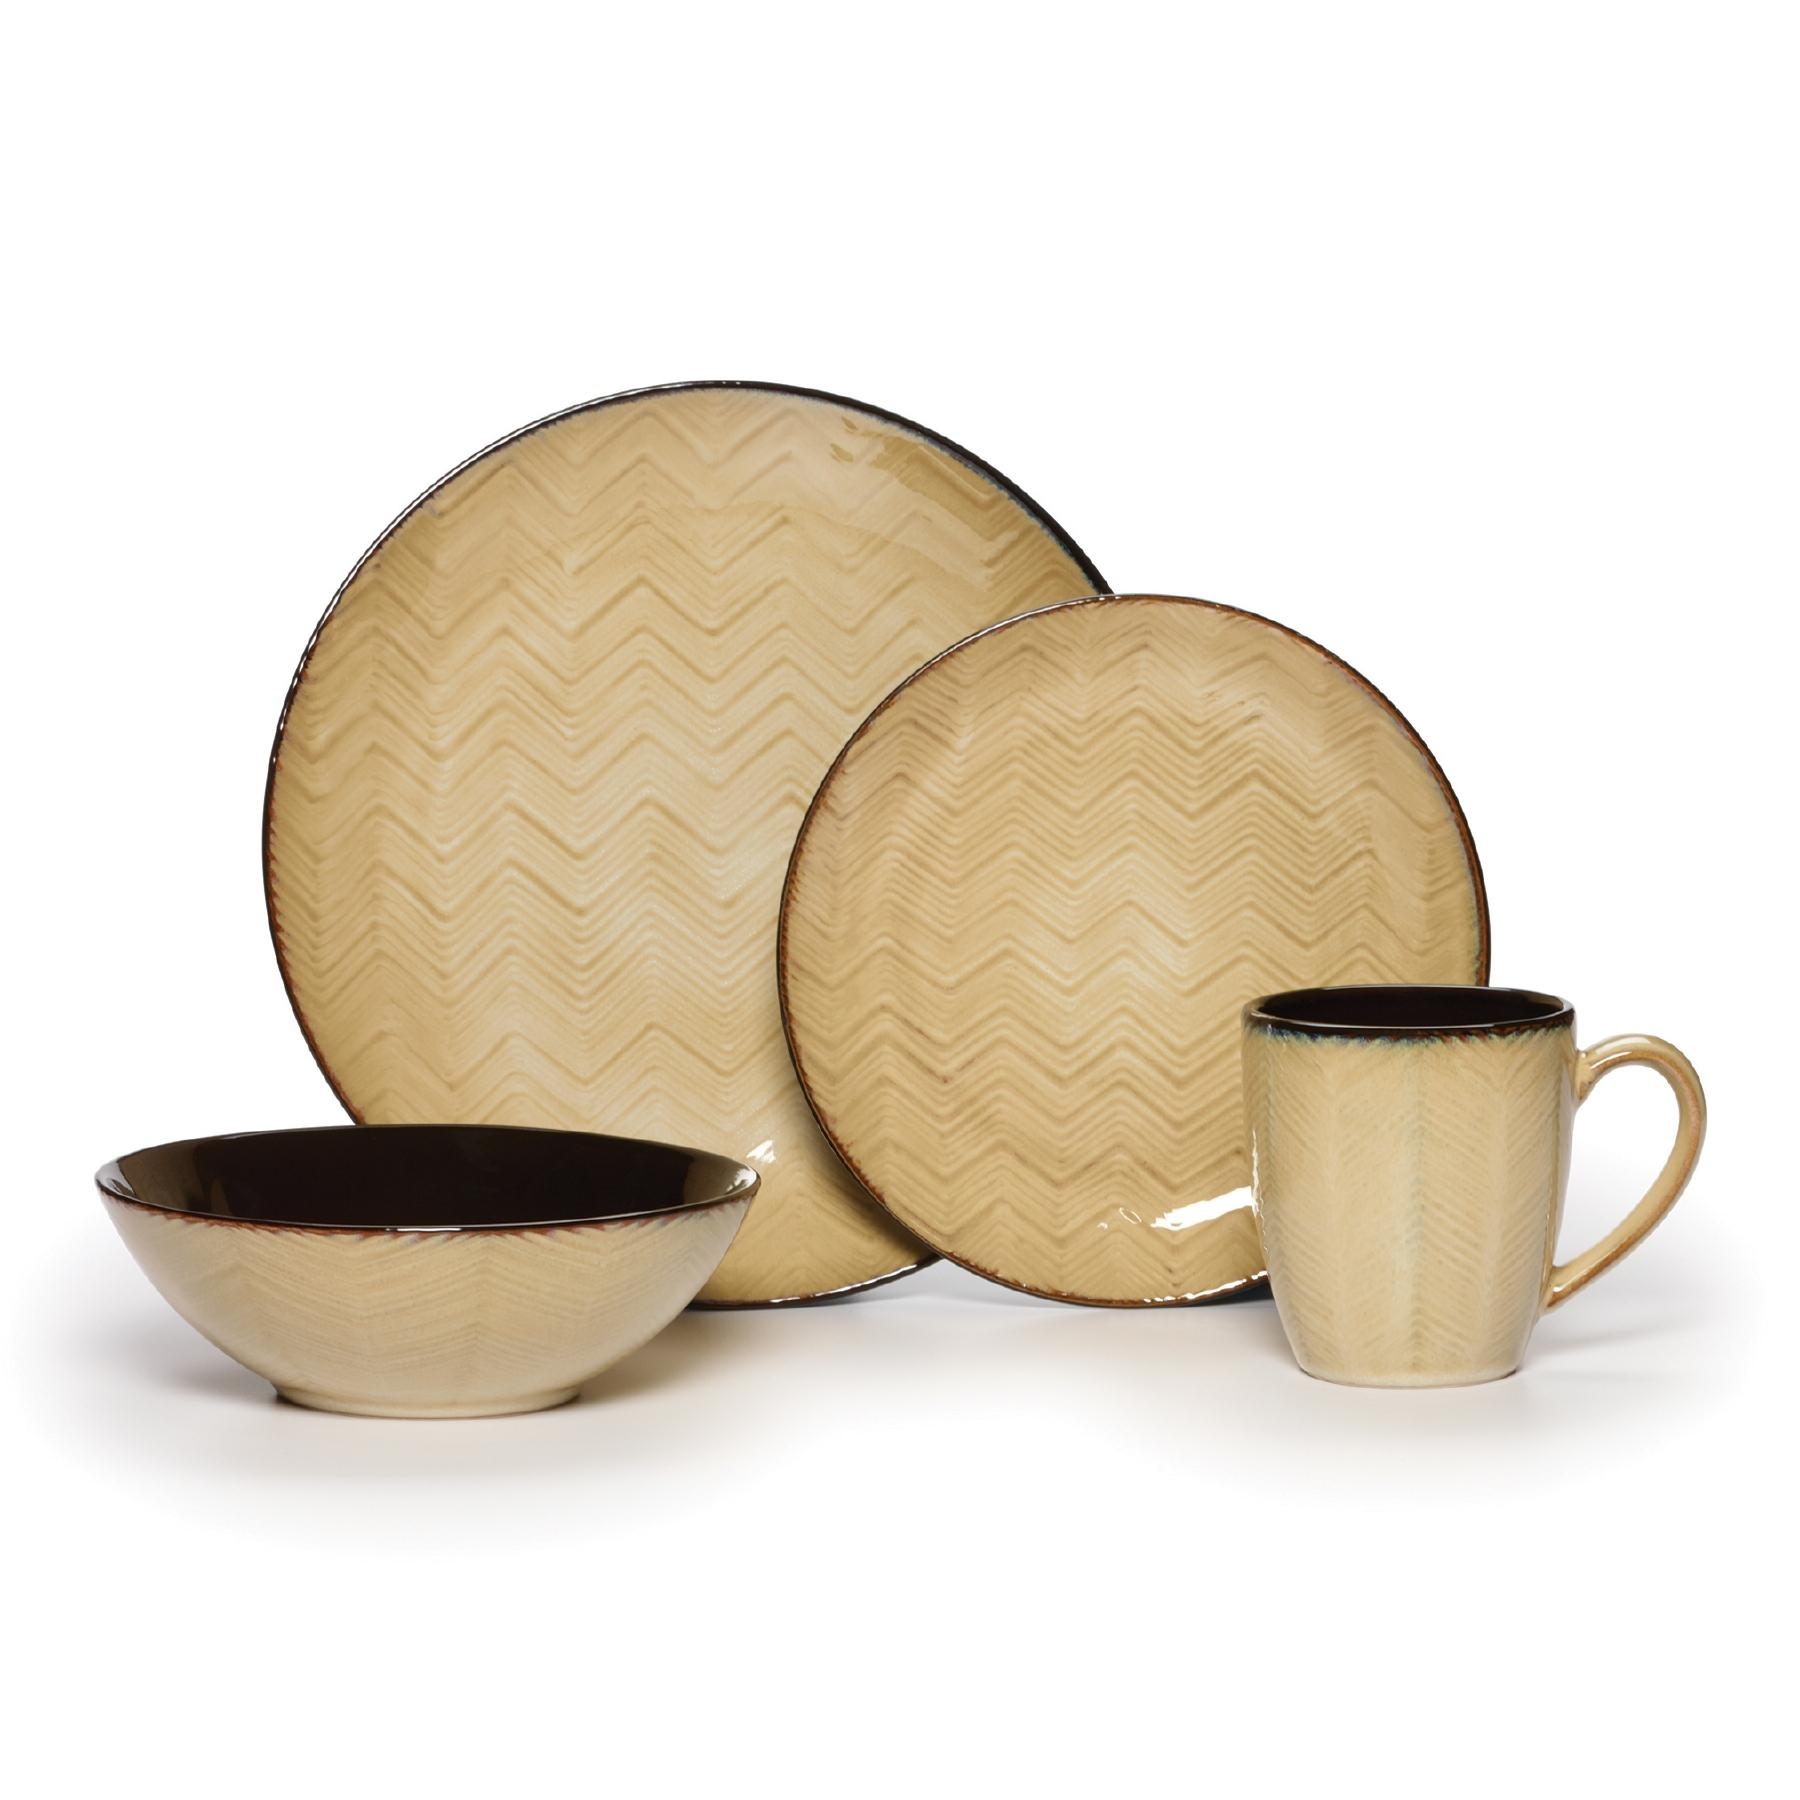 View larger  sc 1 st  Amazon.com & Amazon.com | Linden 16 Piece Dinnerware Set: Dinnerware Sets